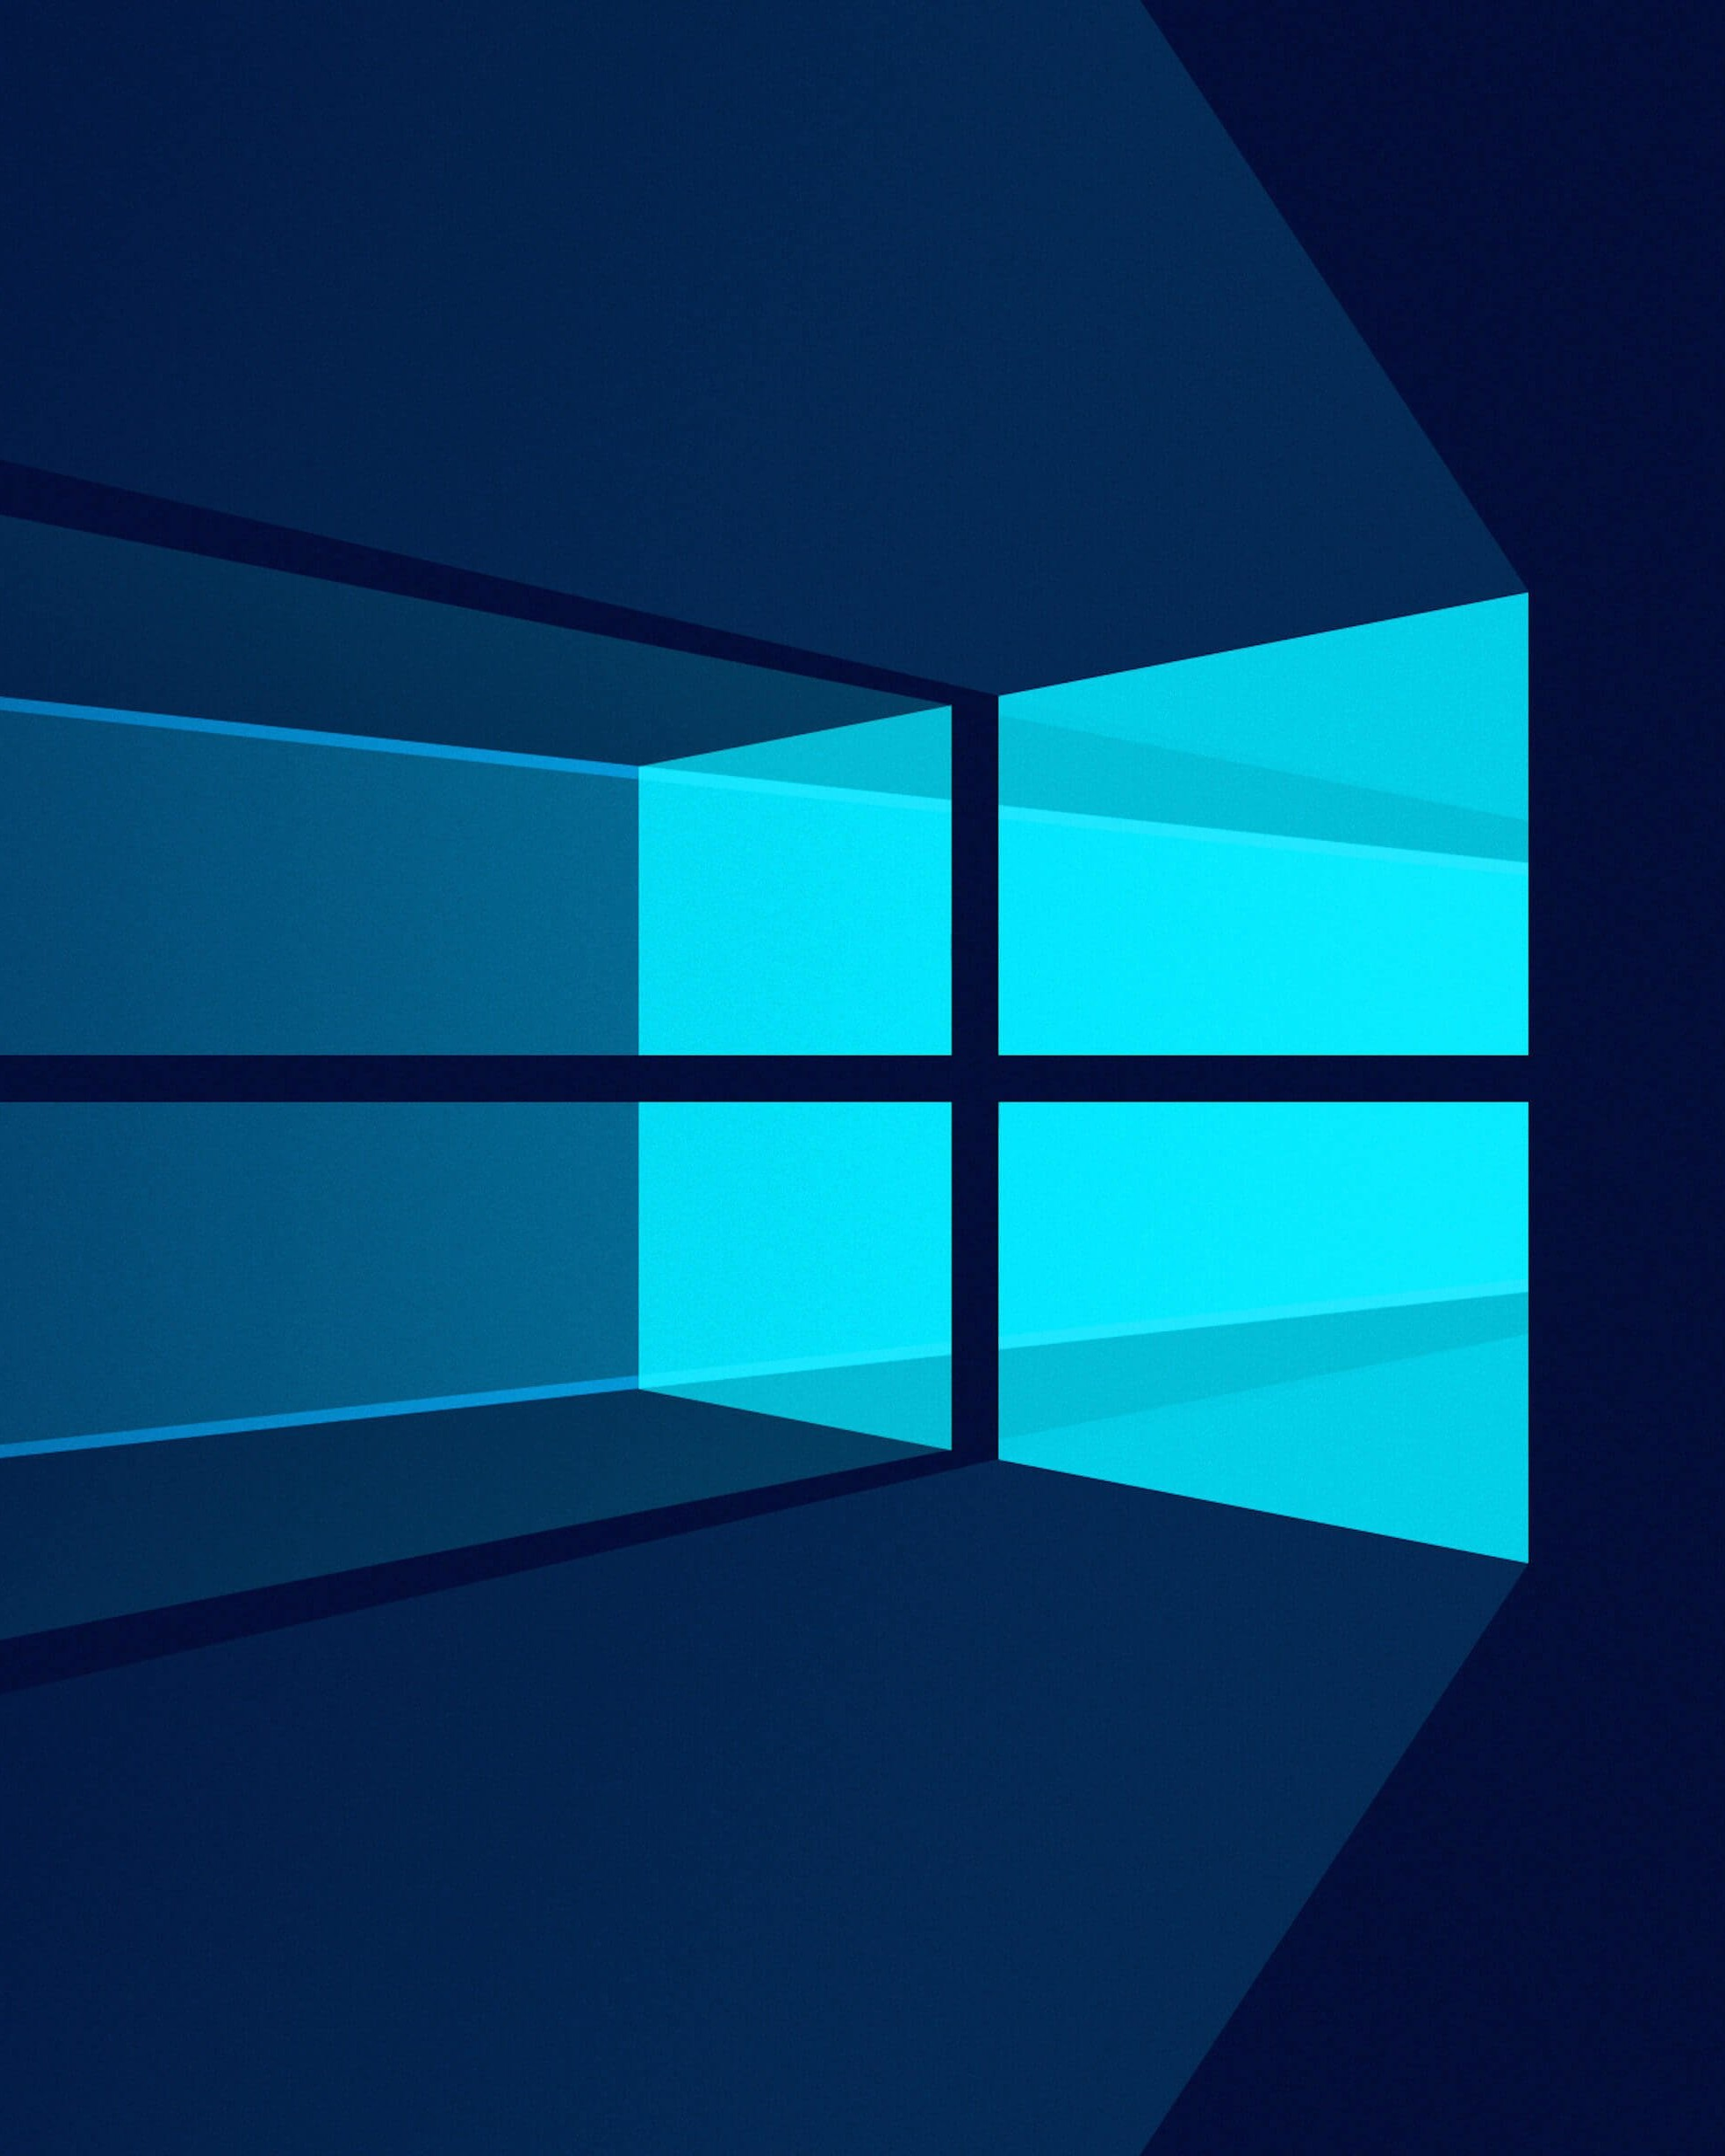 Windows 10 Flat Wallpaper For Twitter Header 49 861 moreover Rock stones 0035 furthermore 144813 in addition Jquery2dot  github moreover Windows 10 Flat Wallpaper For Nexus 7 104 861. on flat preview